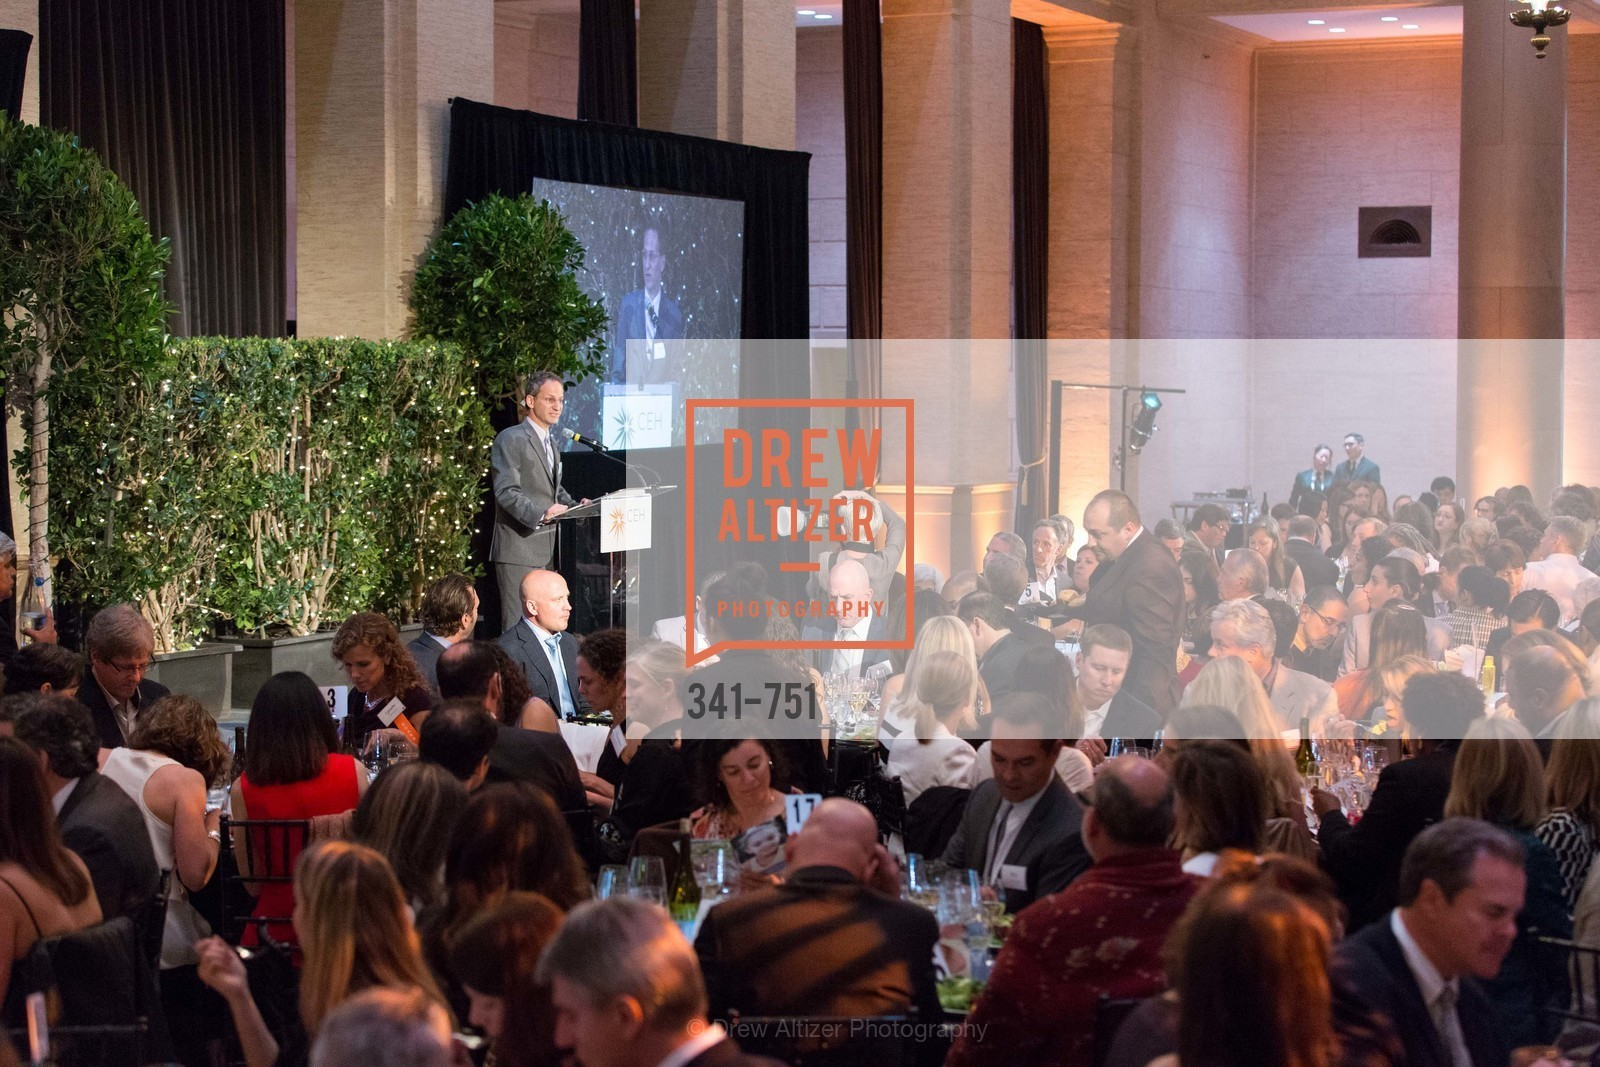 Michael Green, CENTER FOR ENVIRONMENTAL HEALTH (CEH) 2015 Gala, Bently Reserve, May 28th, 2015,Drew Altizer, Drew Altizer Photography, full-service agency, private events, San Francisco photographer, photographer california